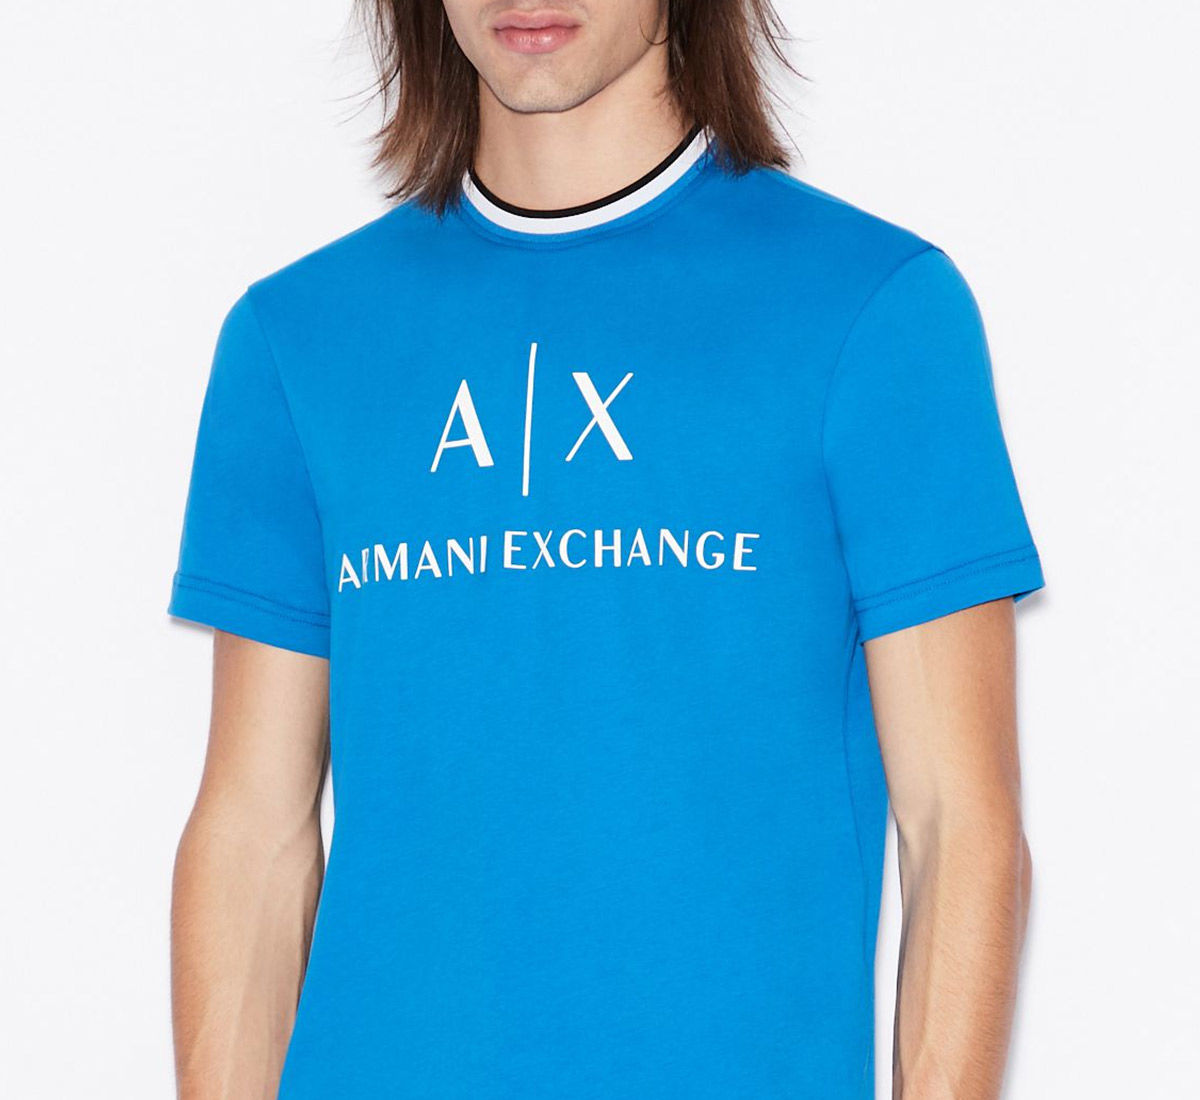 Armani Exchange man model wearing a t-shirt